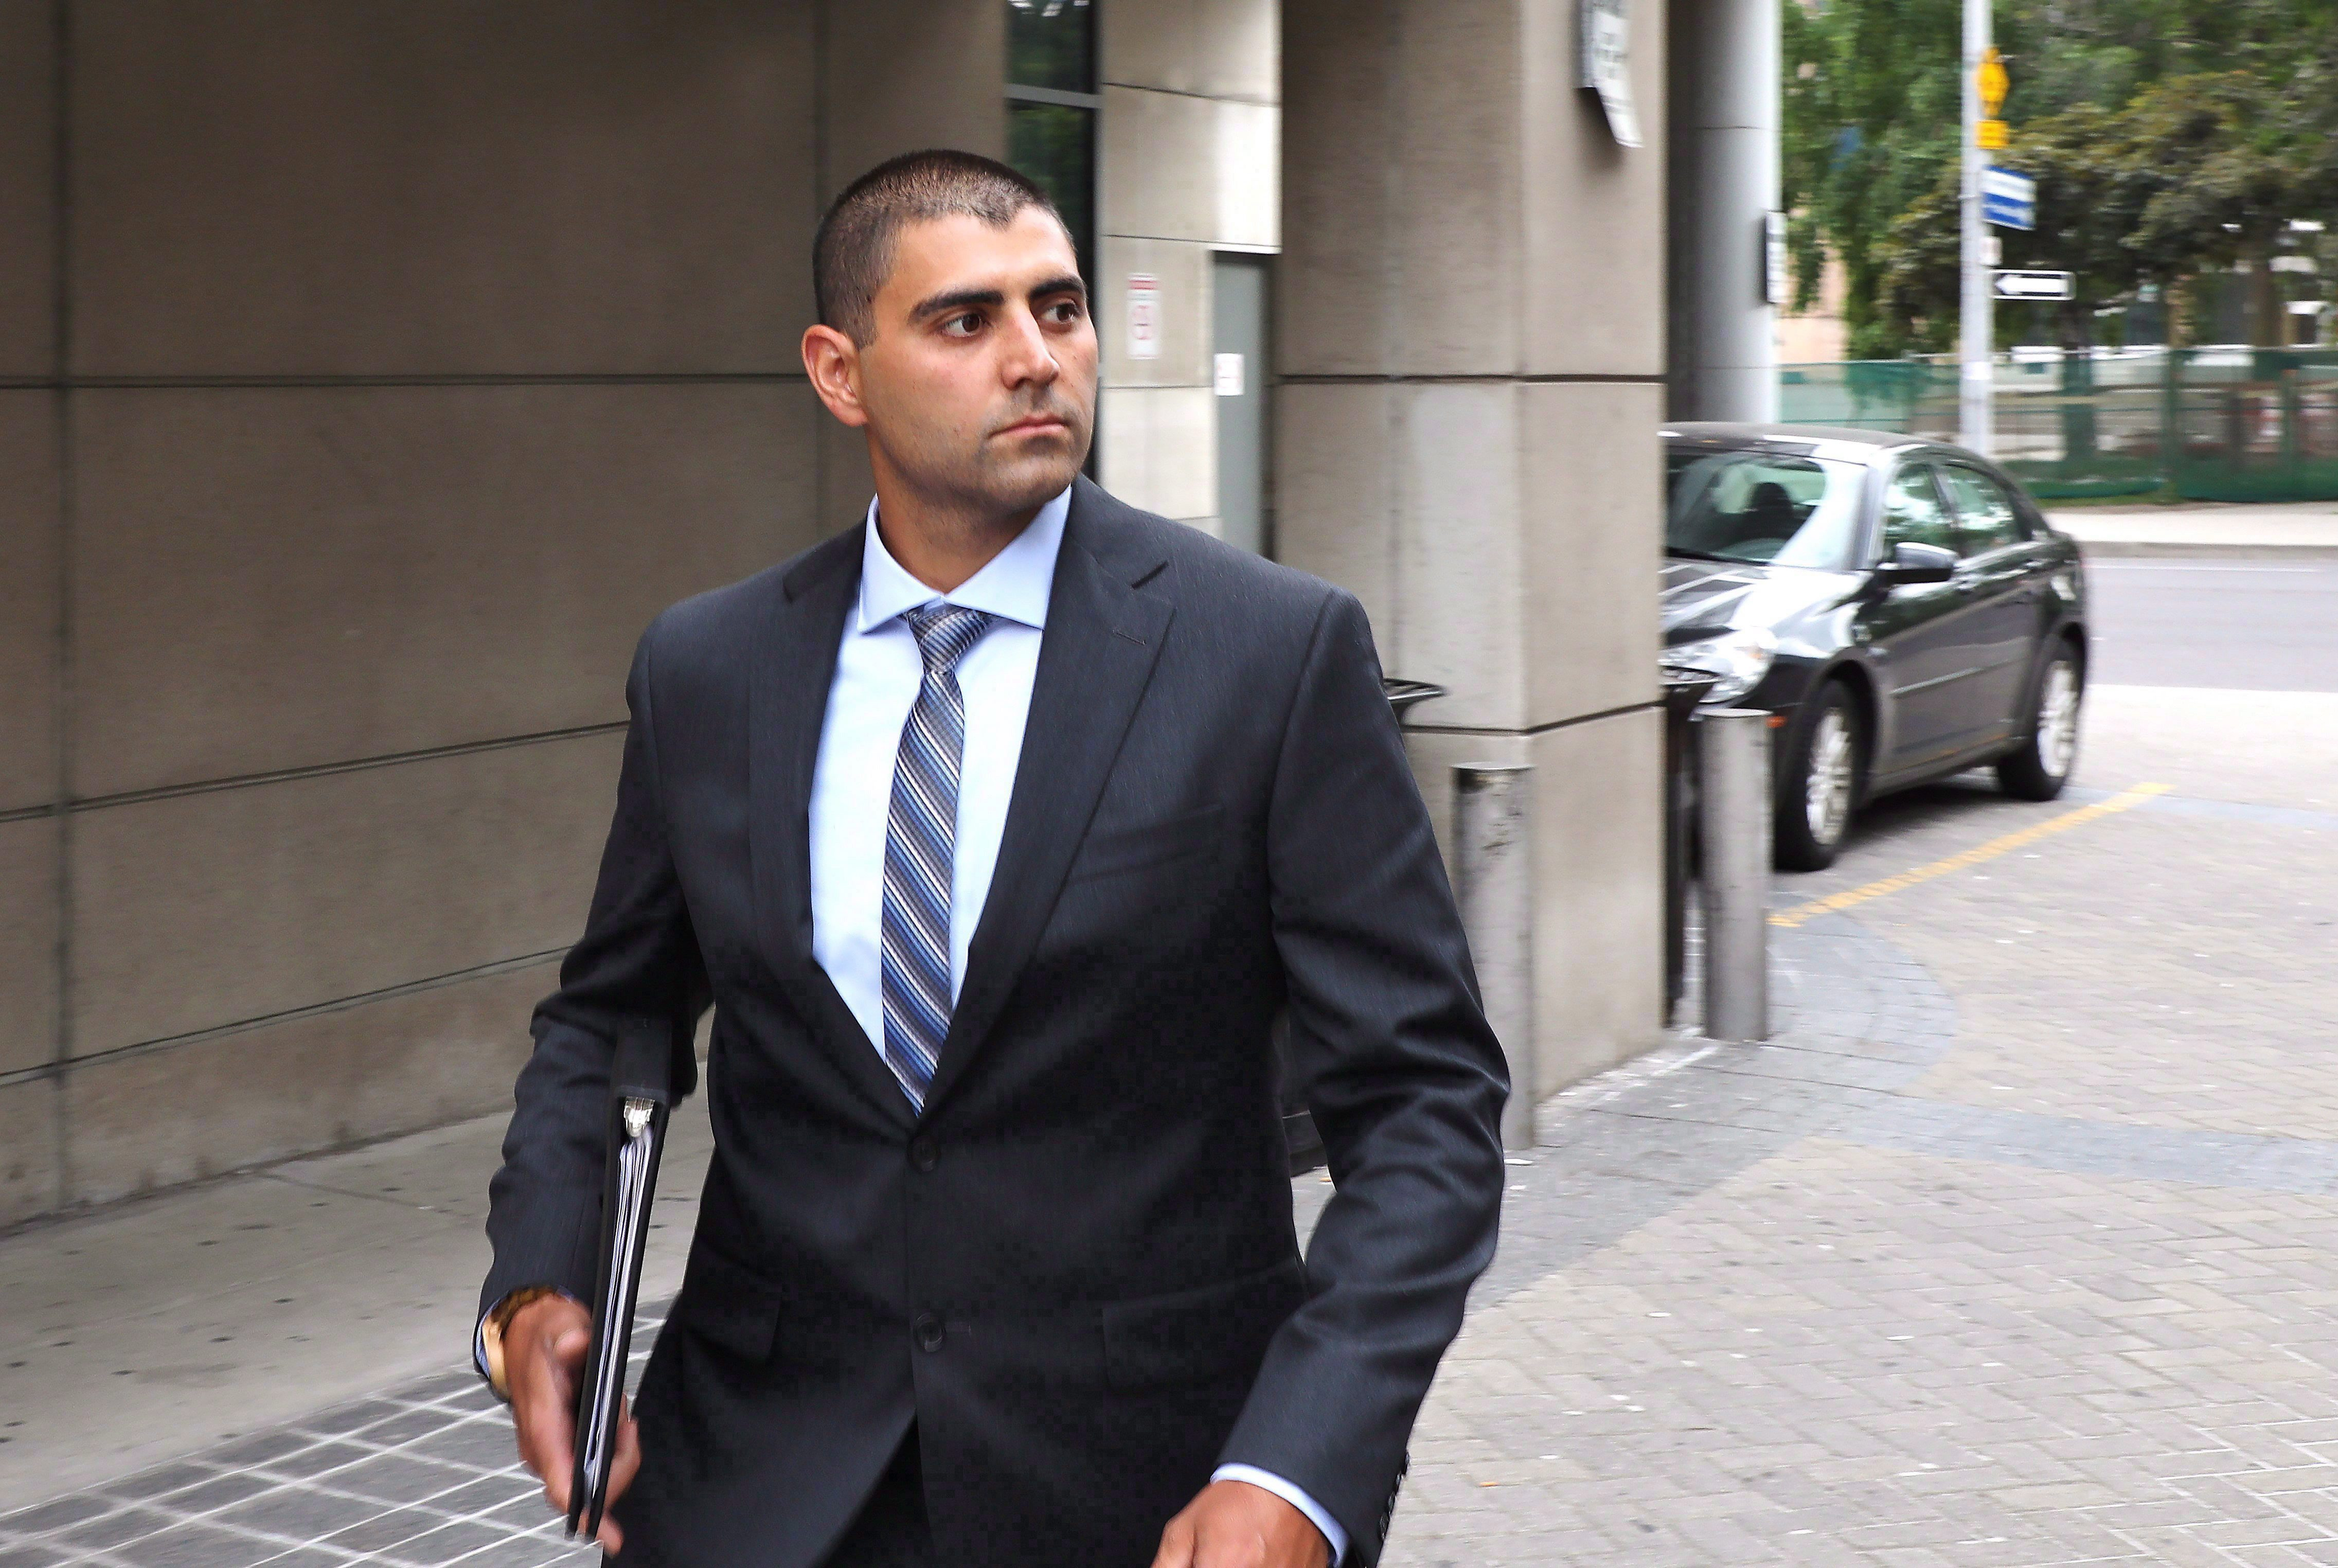 a mAN IN A BUSINESS SUIT STANDS OUTSIDE A COURTHOUSE